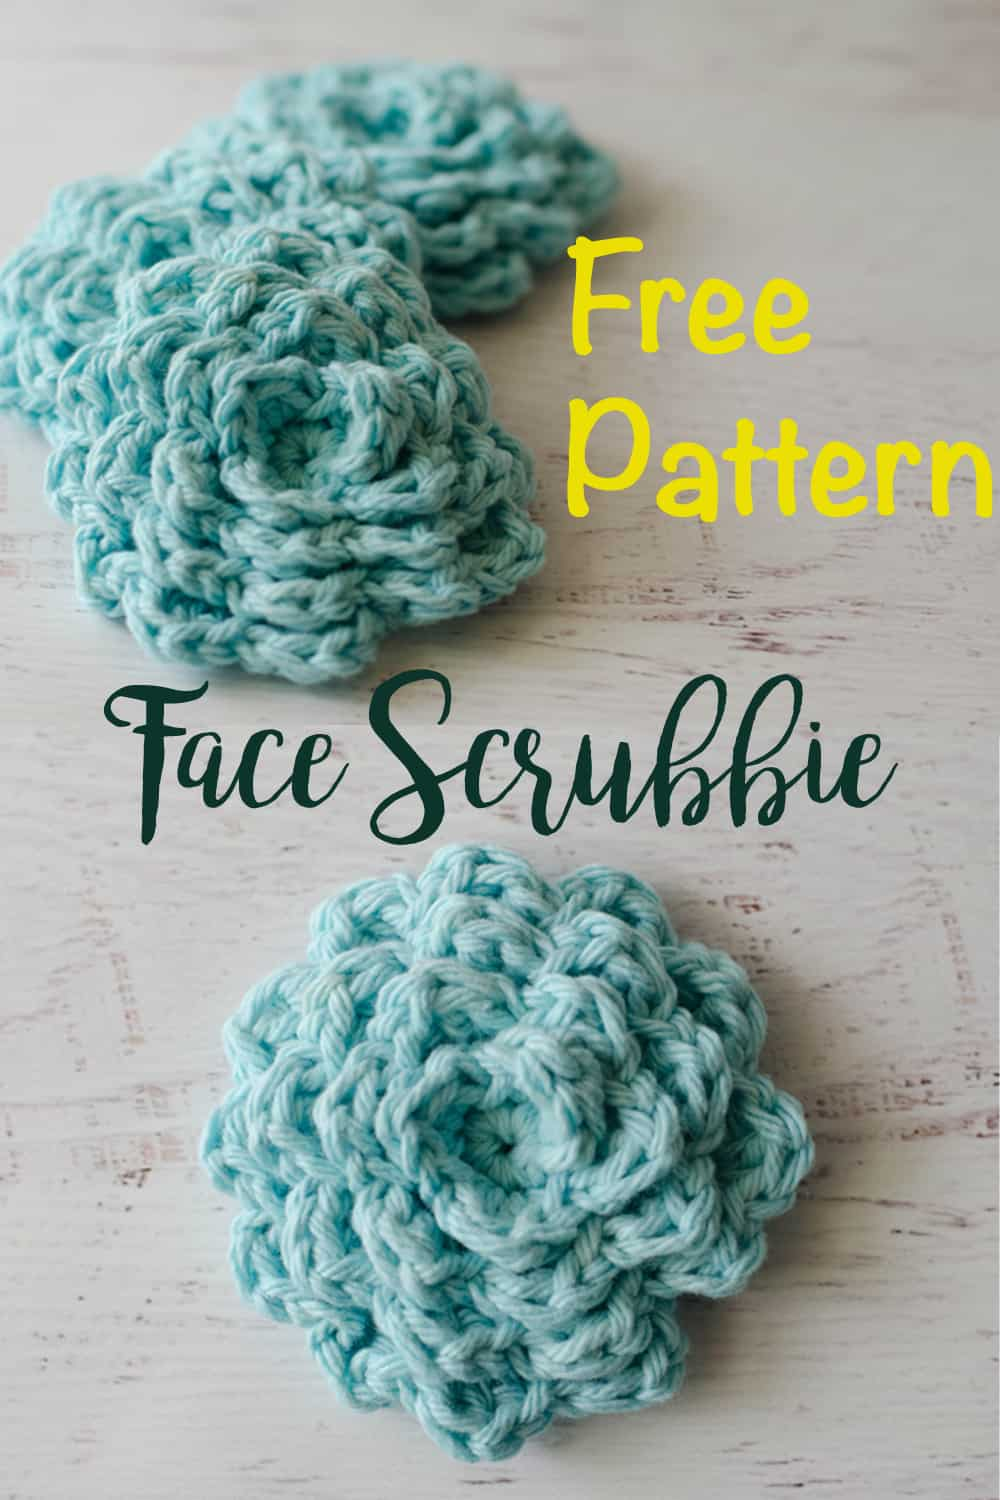 Crochet Face Scrubbies - Crochet 365 Knit Too